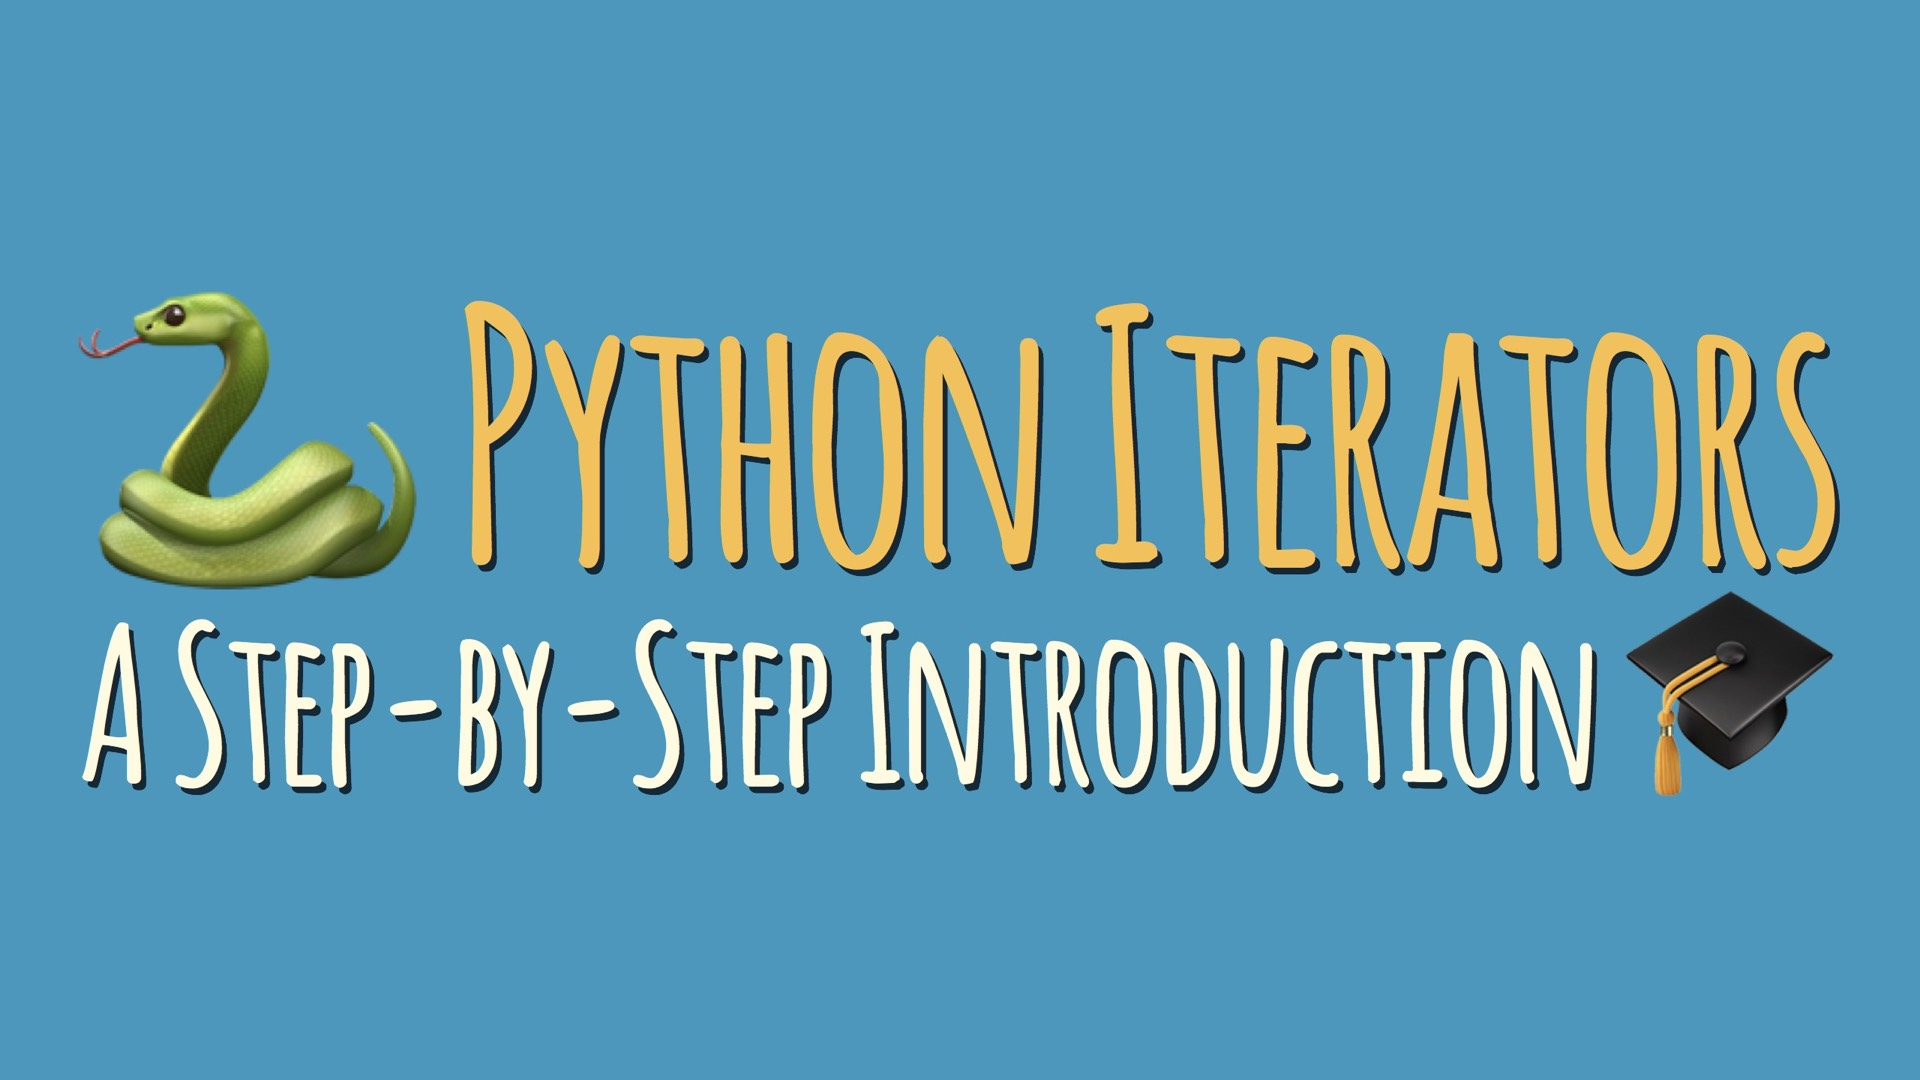 Python Iterators: A Step-By-Step Introduction